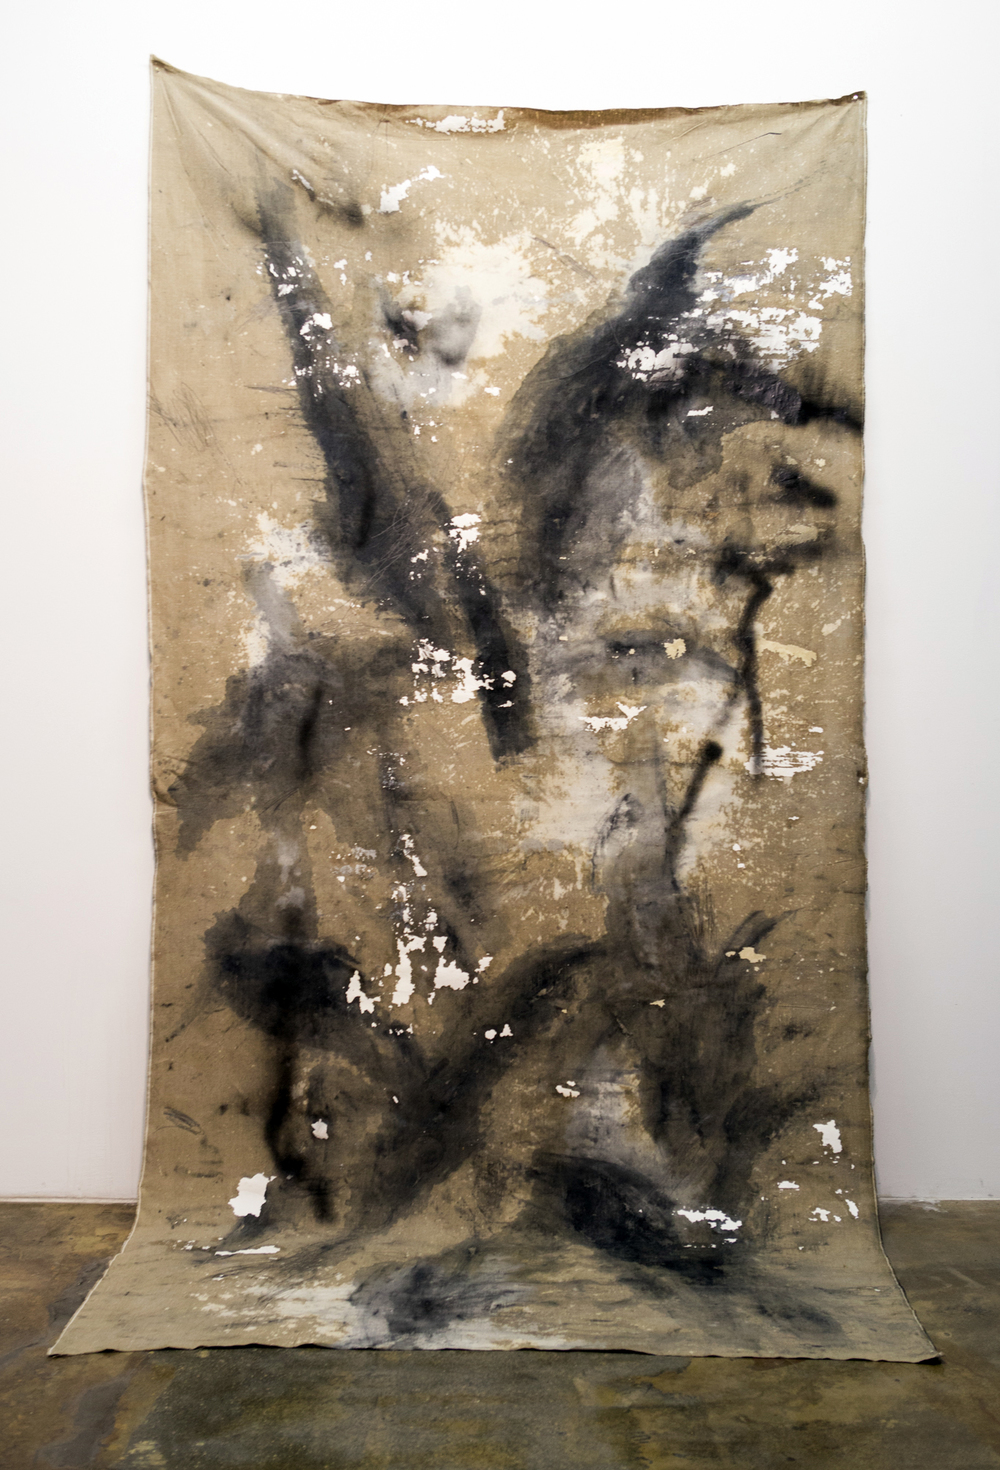 MLSL_06_Wölf,   2015  Oil, acrylic, bleach, drywall, lead and spray paint on linen  144 x 71.5 in (365.76 x 181.61 cm)